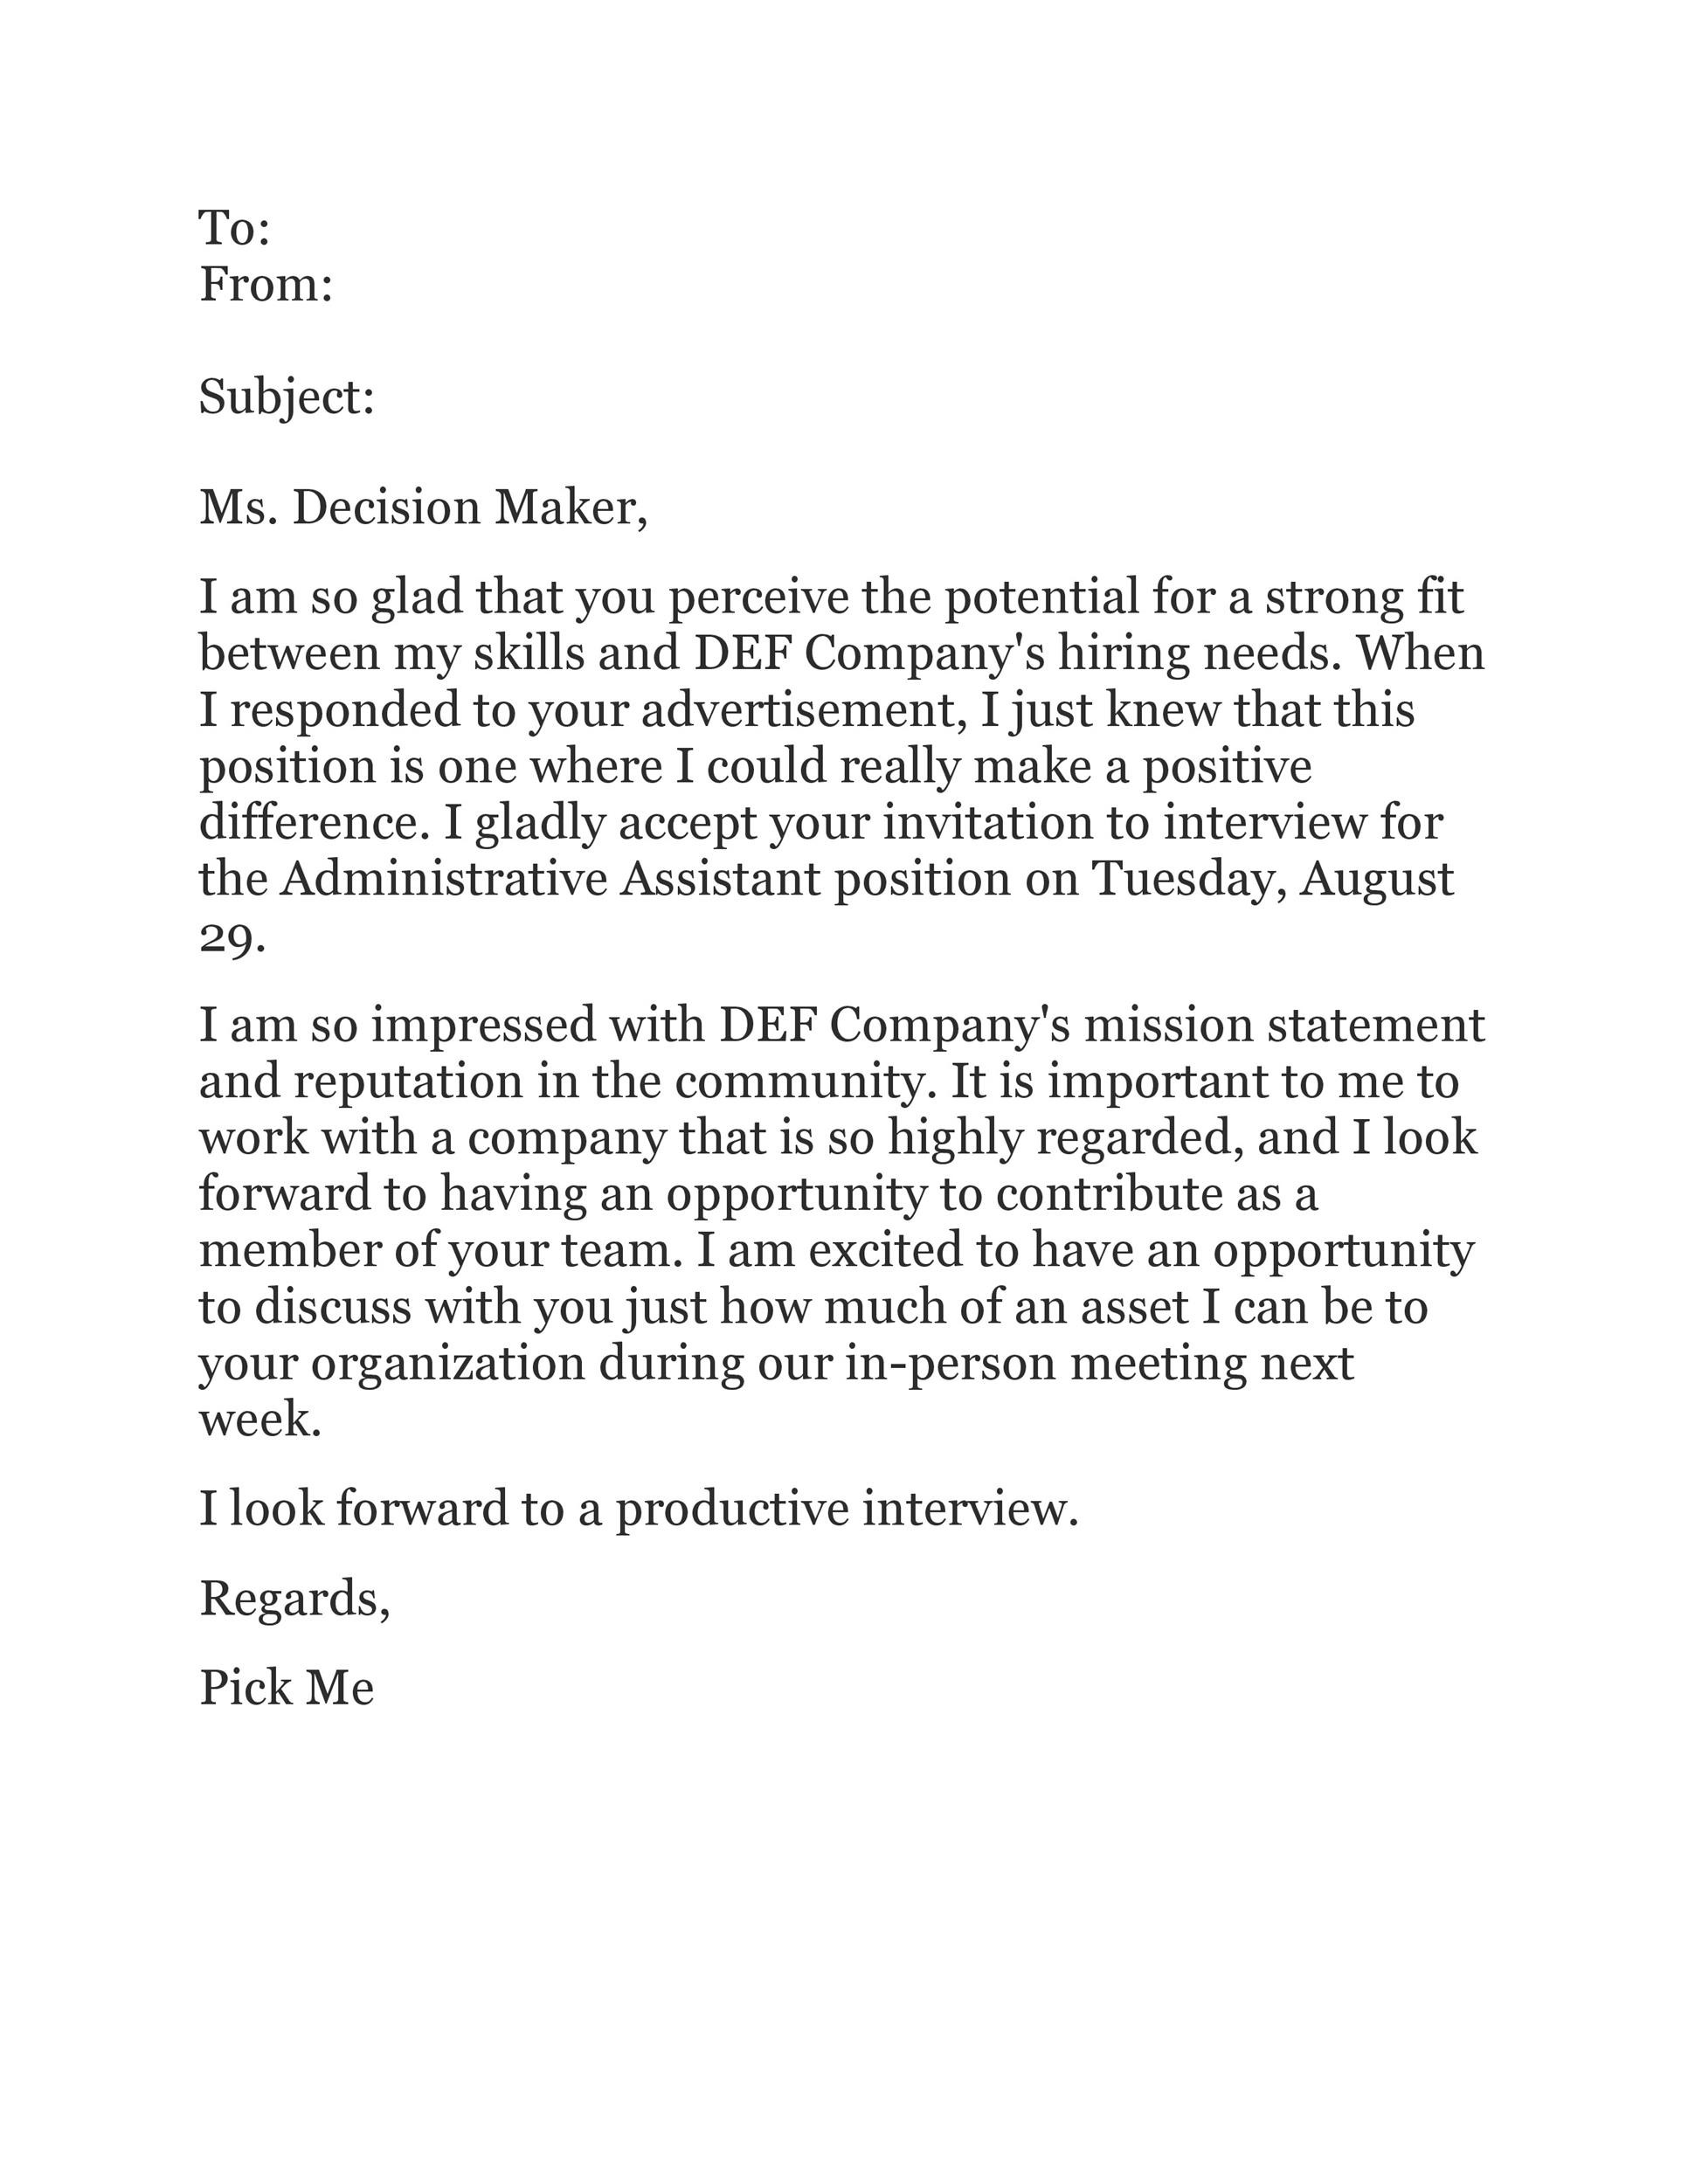 38 Professional Interview Acceptance Emails (+Smart Tips) ᐅ TemplateLab